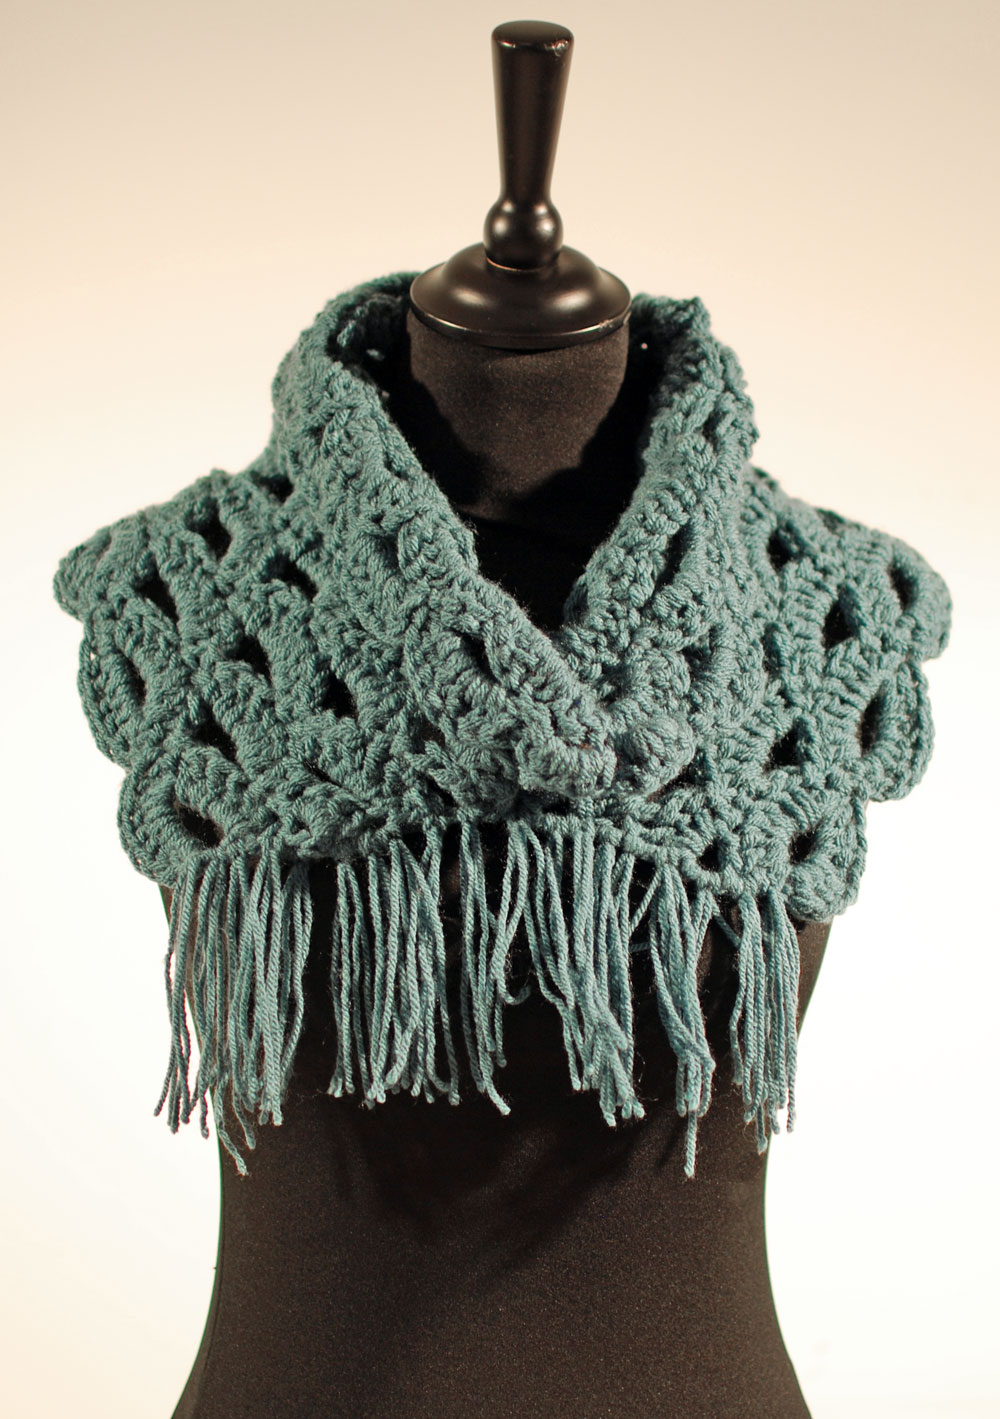 Col crochet franges